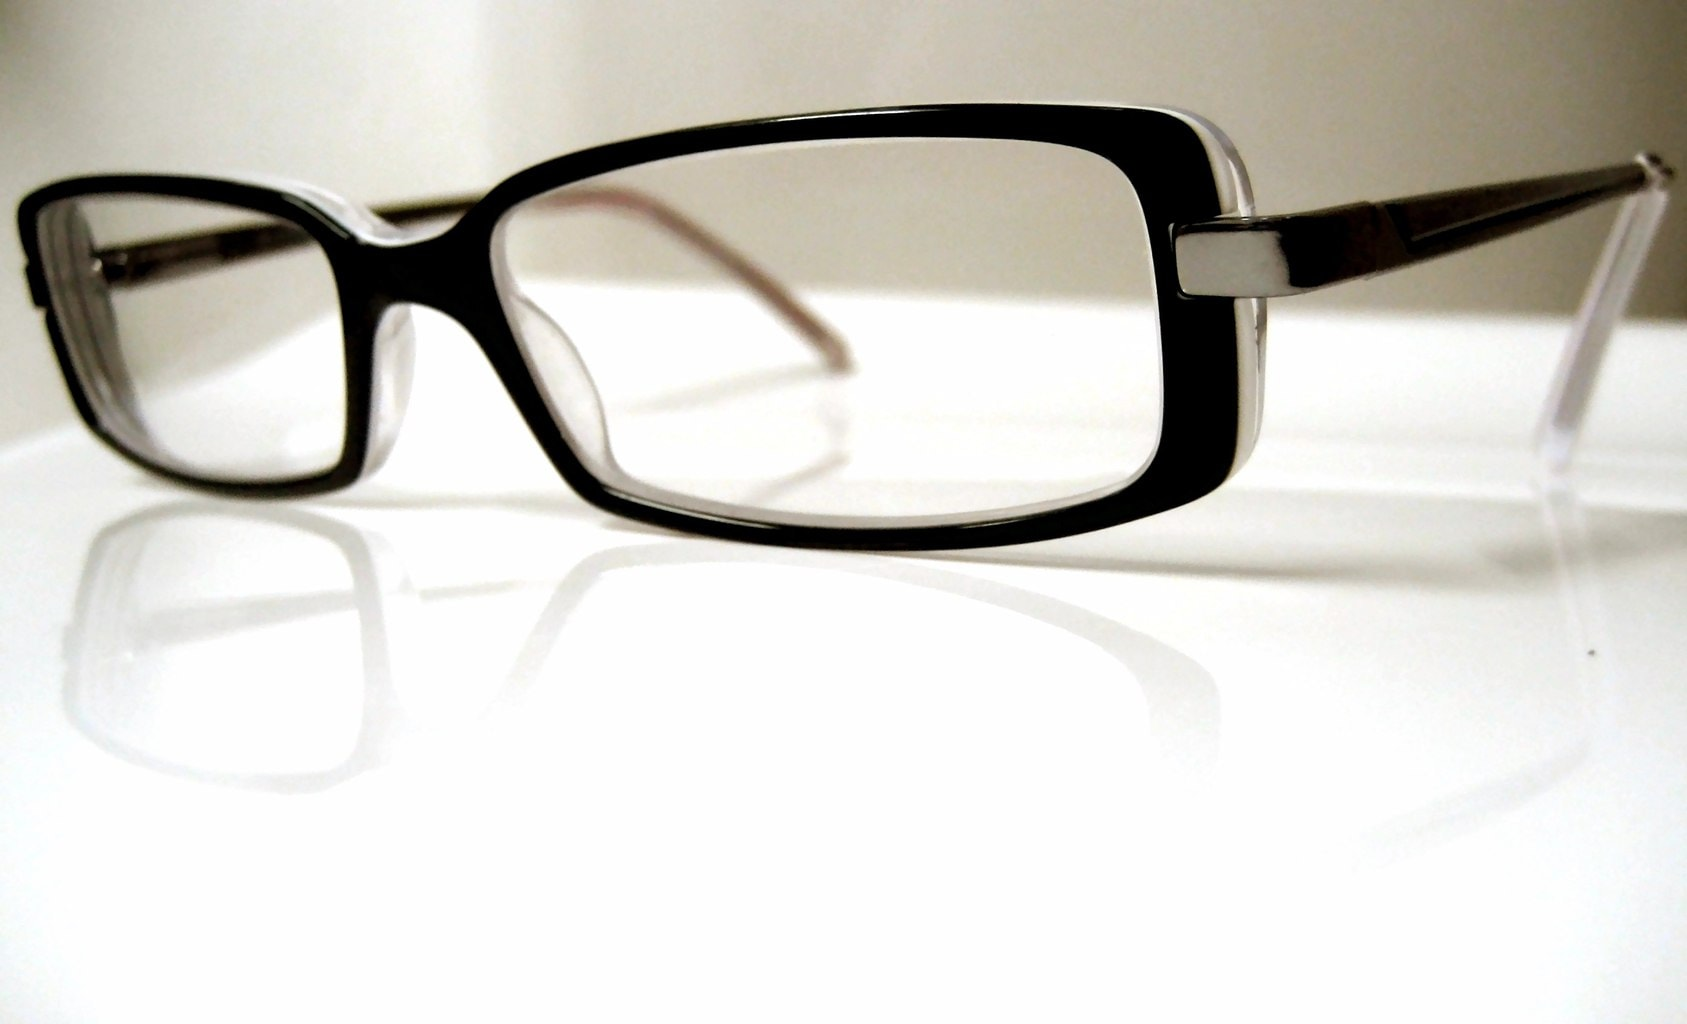 If you are in need of eyeglasses, we found out how to get discounts on eyeglasses at popular online sources and in stores with the lowest prices.